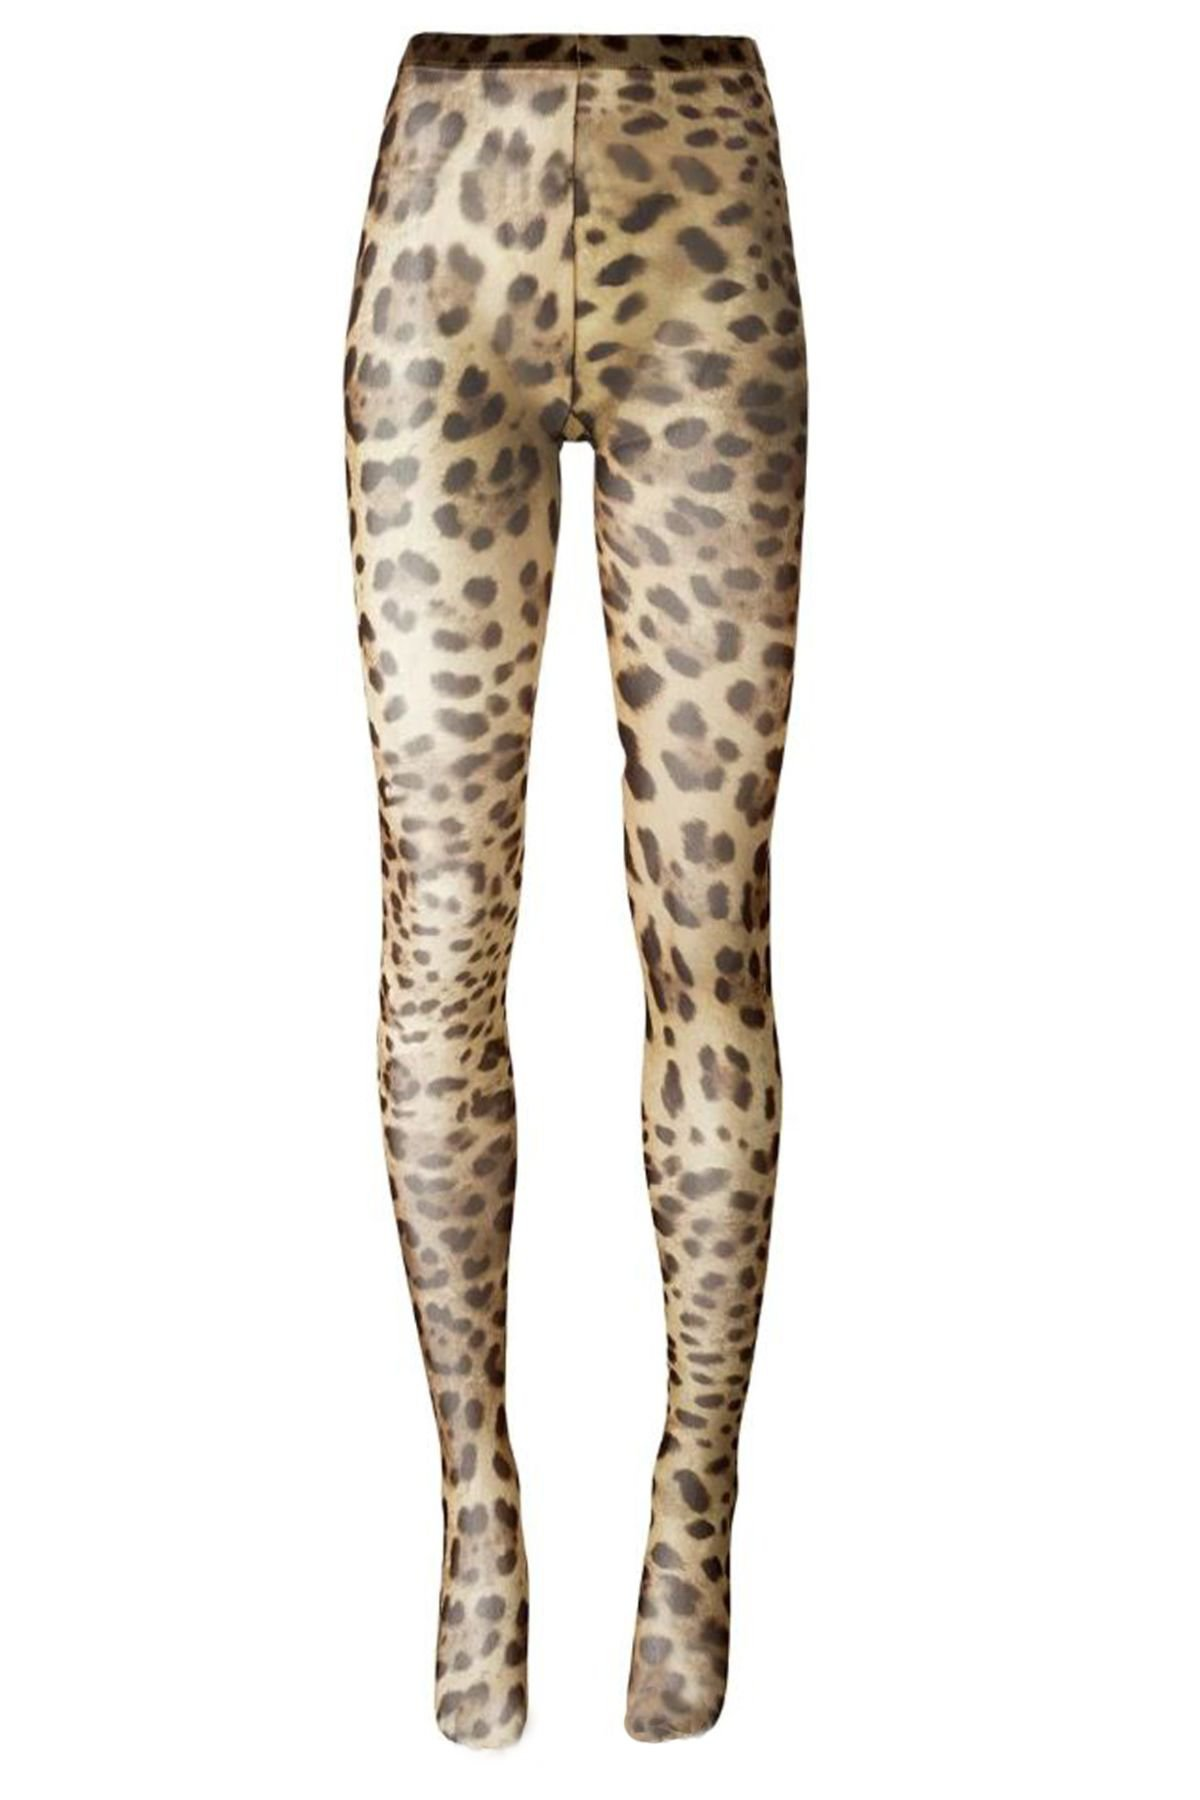 Dolce & Gabbana Leopard-printed Tights